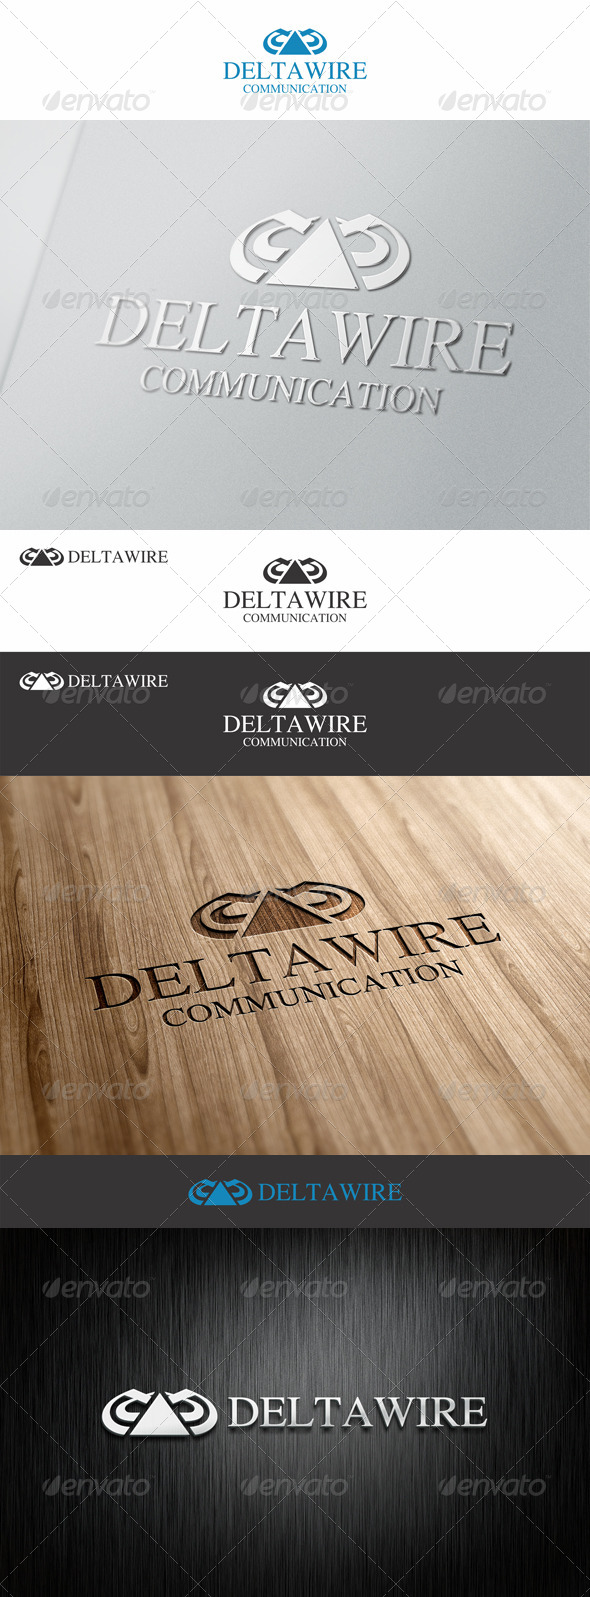 GraphicRiver Delta Wire Communication Logo 7524021